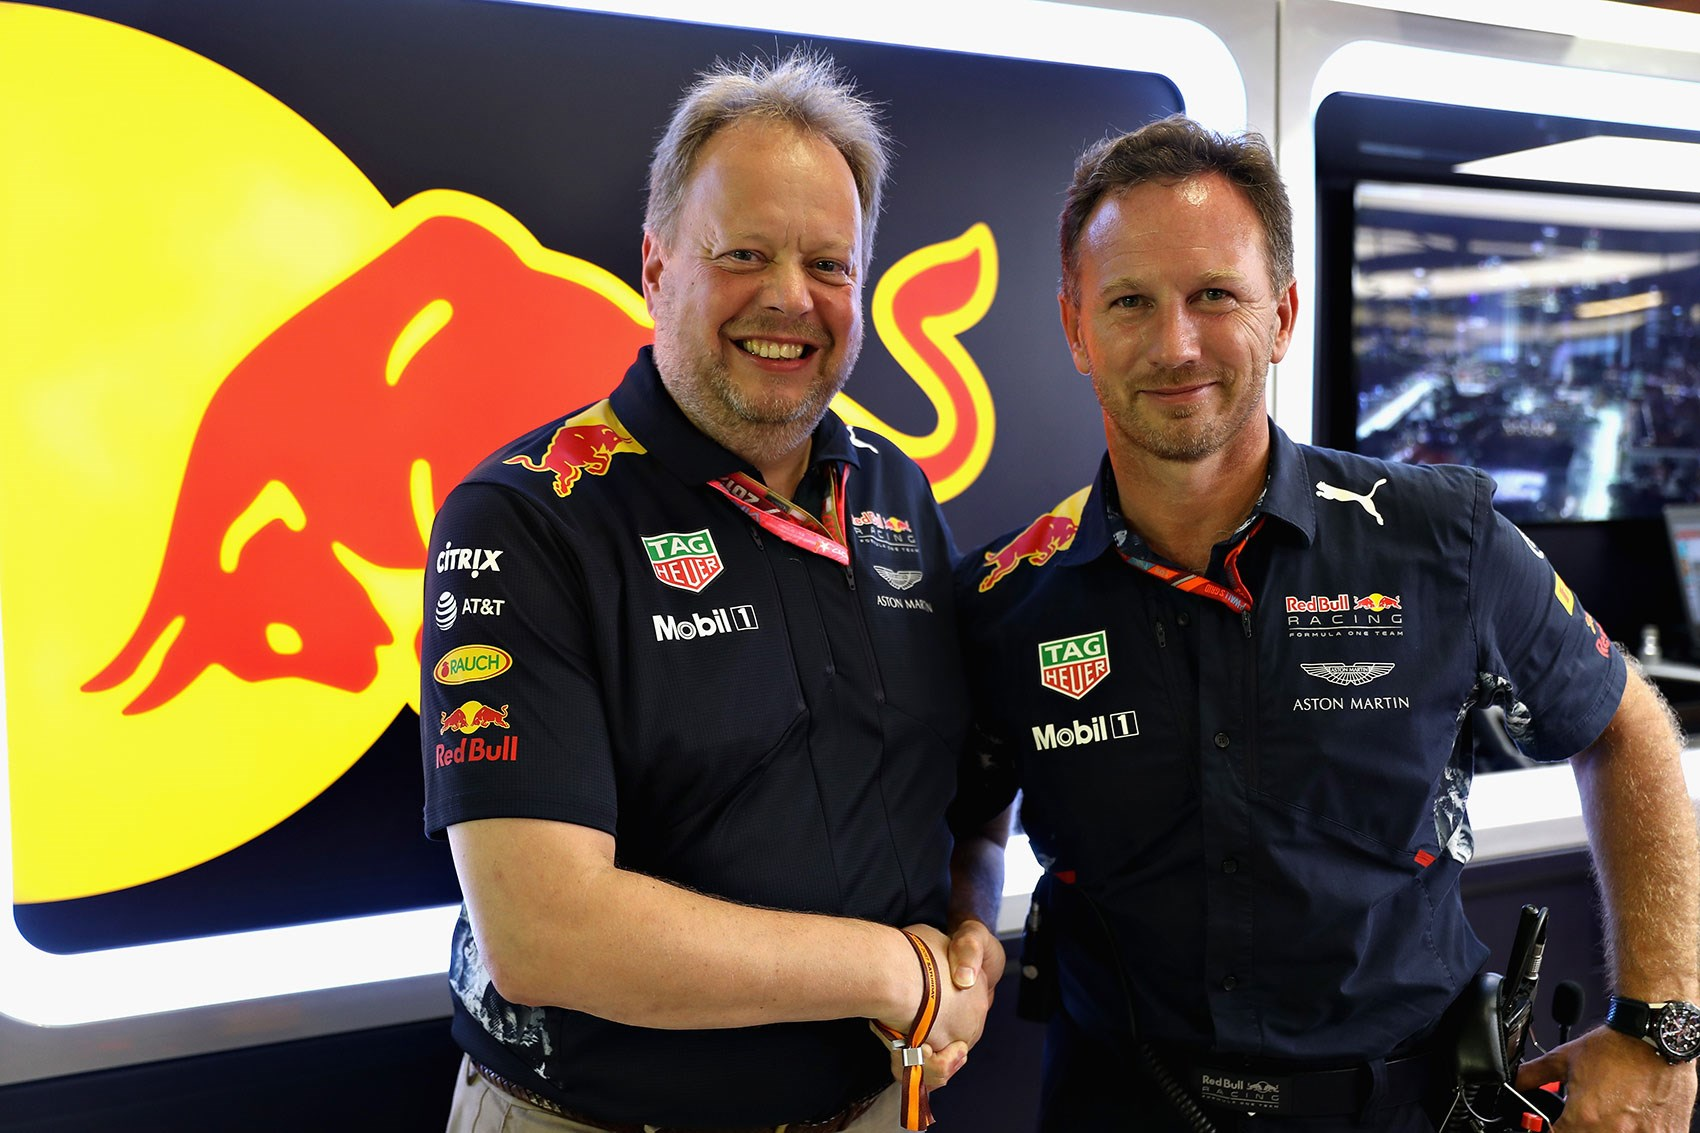 Aston Martin and Red Bull Racing strengthen partnership